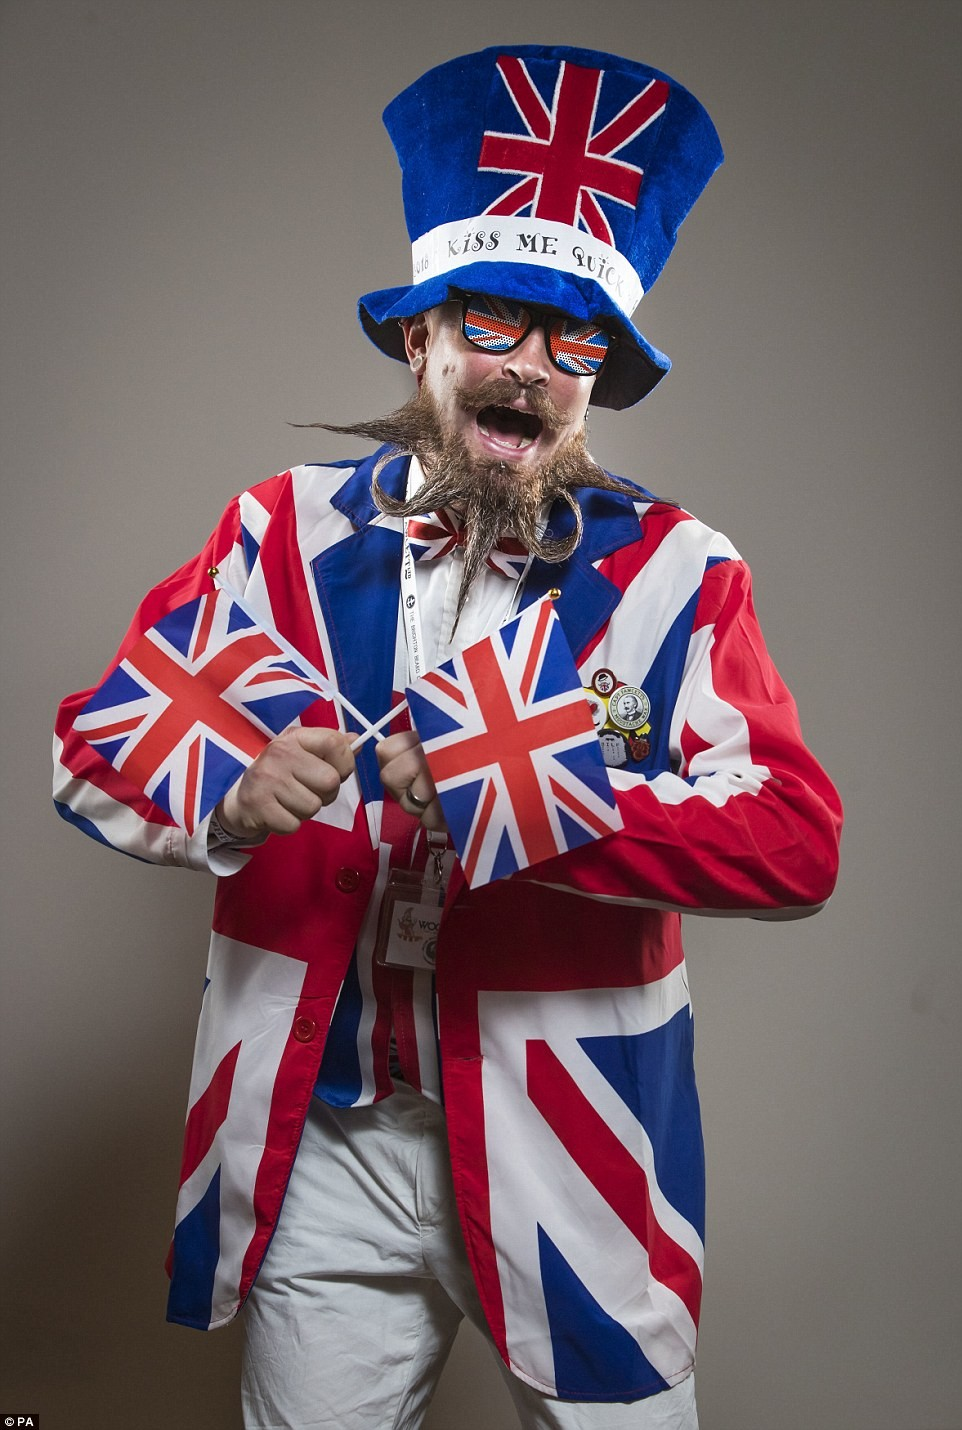 Check out photos from the British Beard & Moustache Championships in Blackpool.